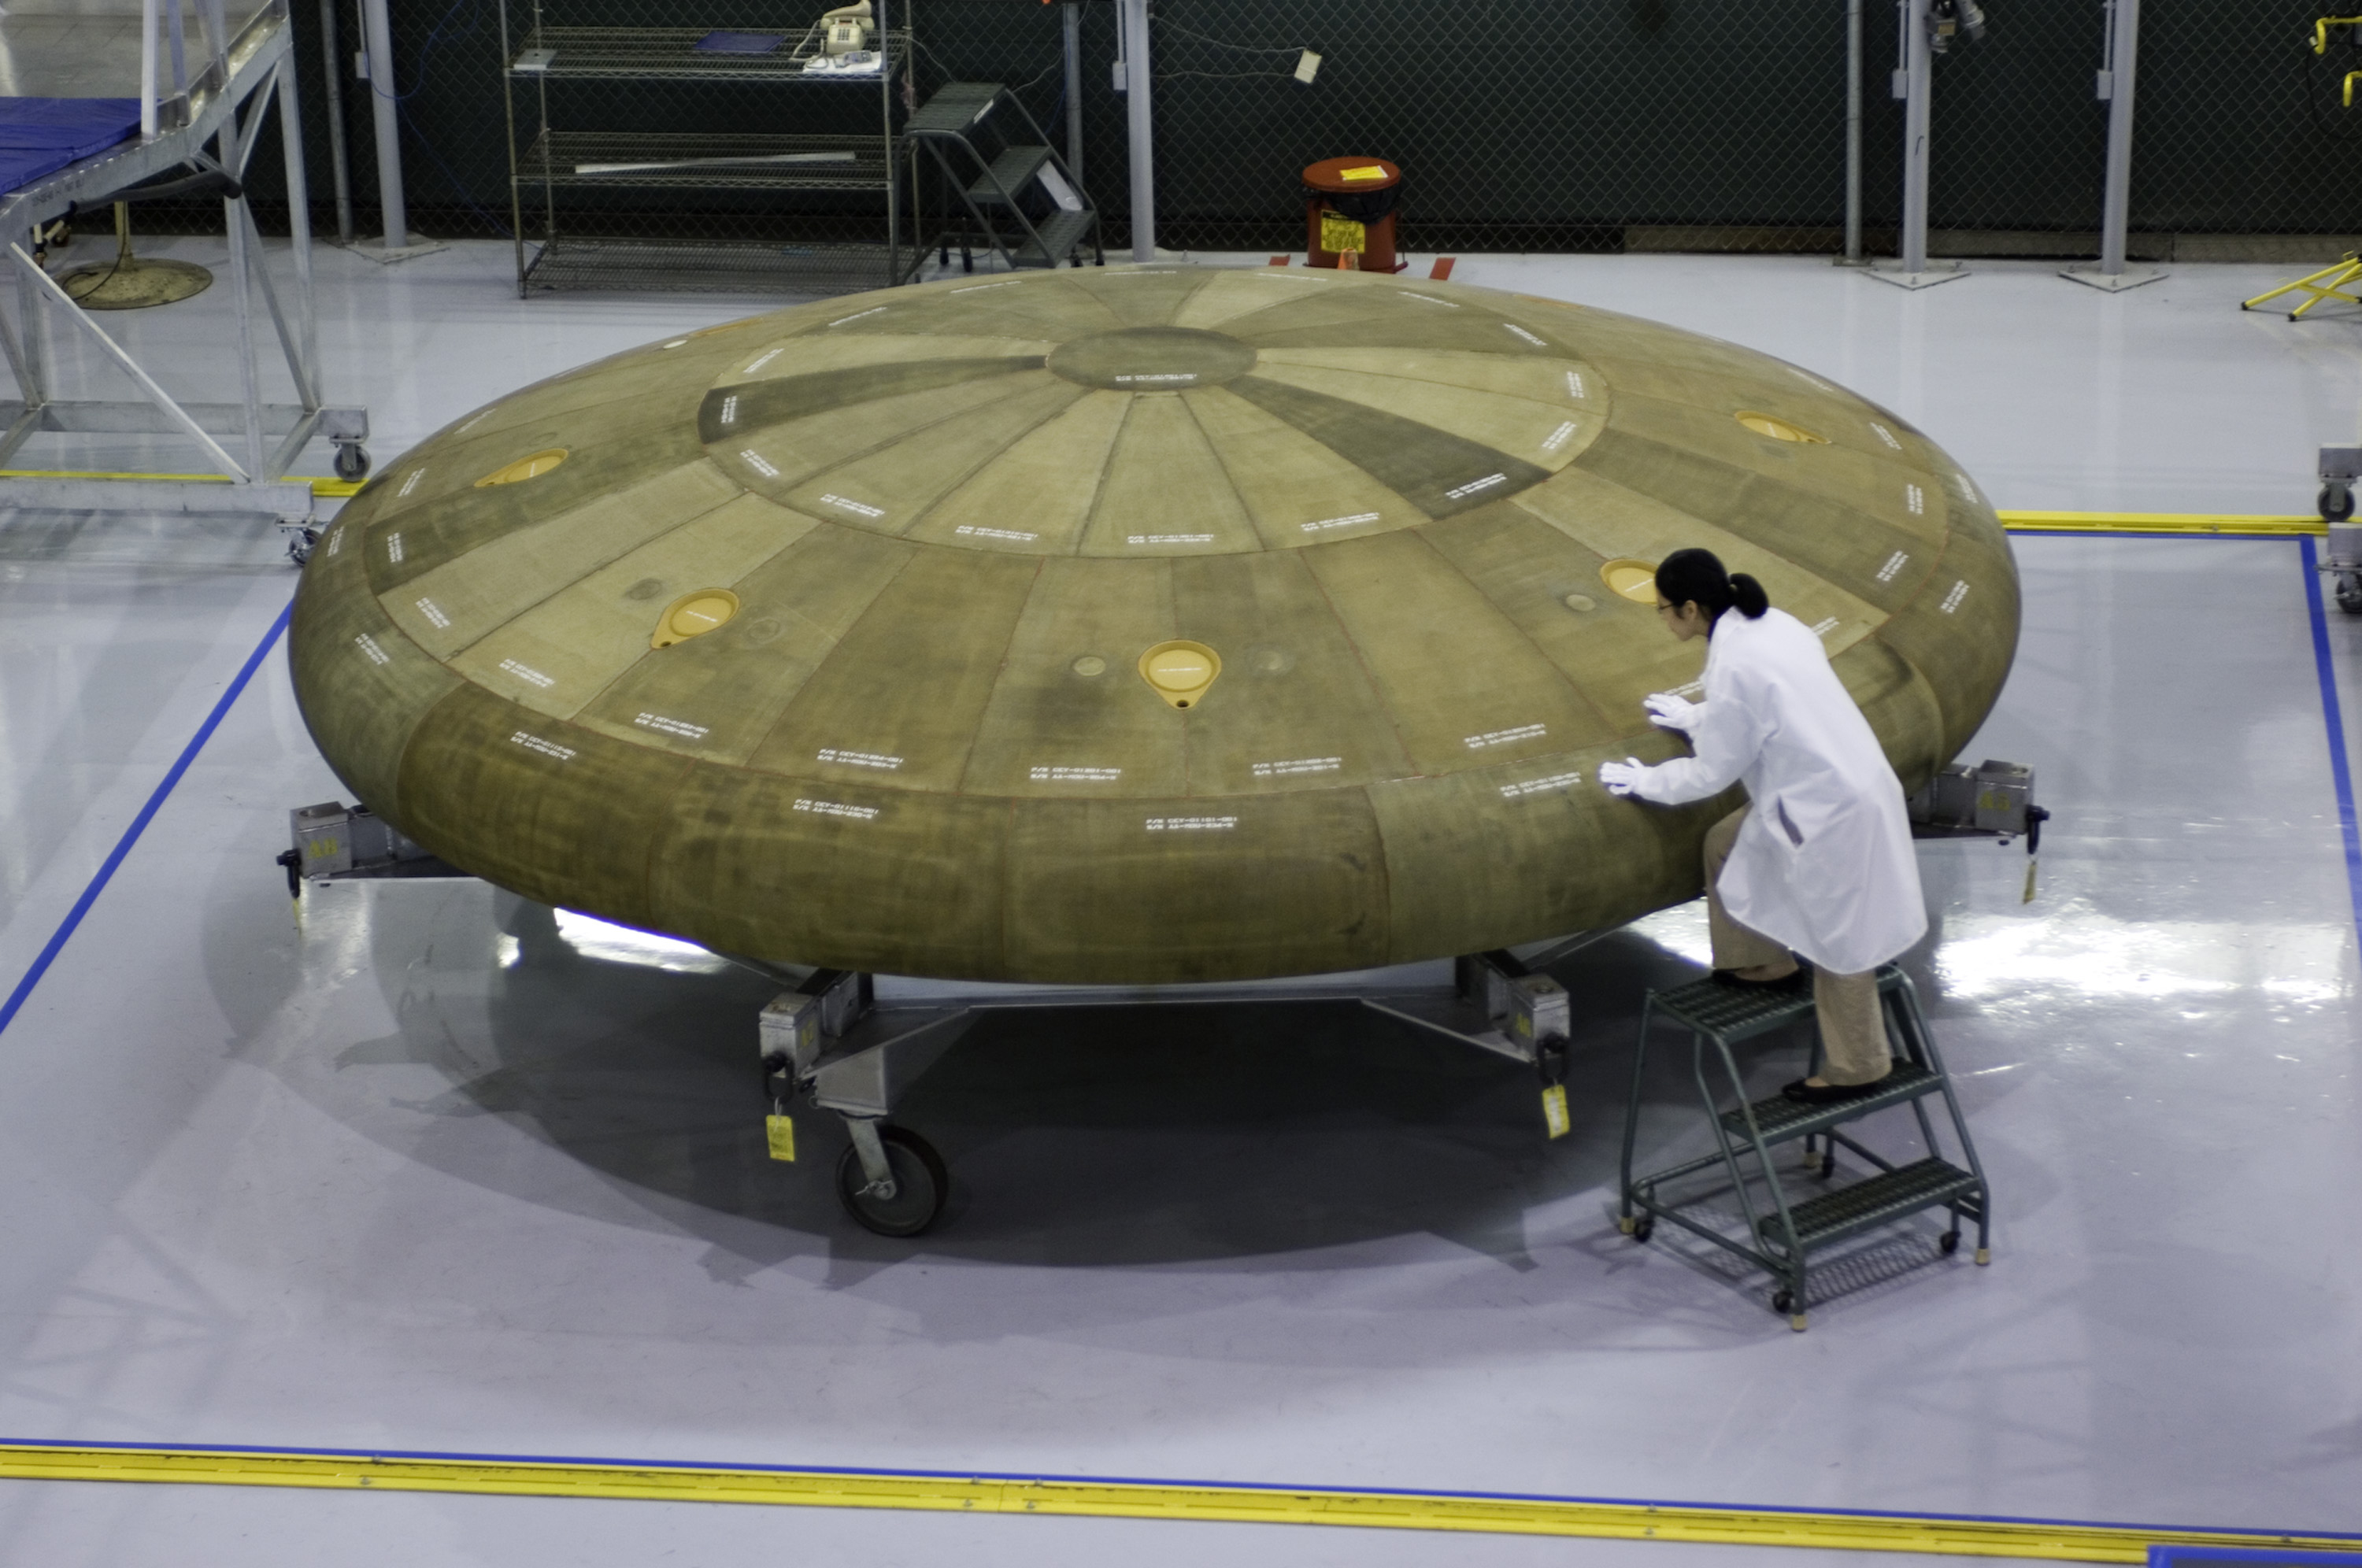 the orion shield project analysis The orion shield project: doomed from the get-go executive summary projects account for about one fourth of the us and the world's gross domestic product (schwalbe 2012.